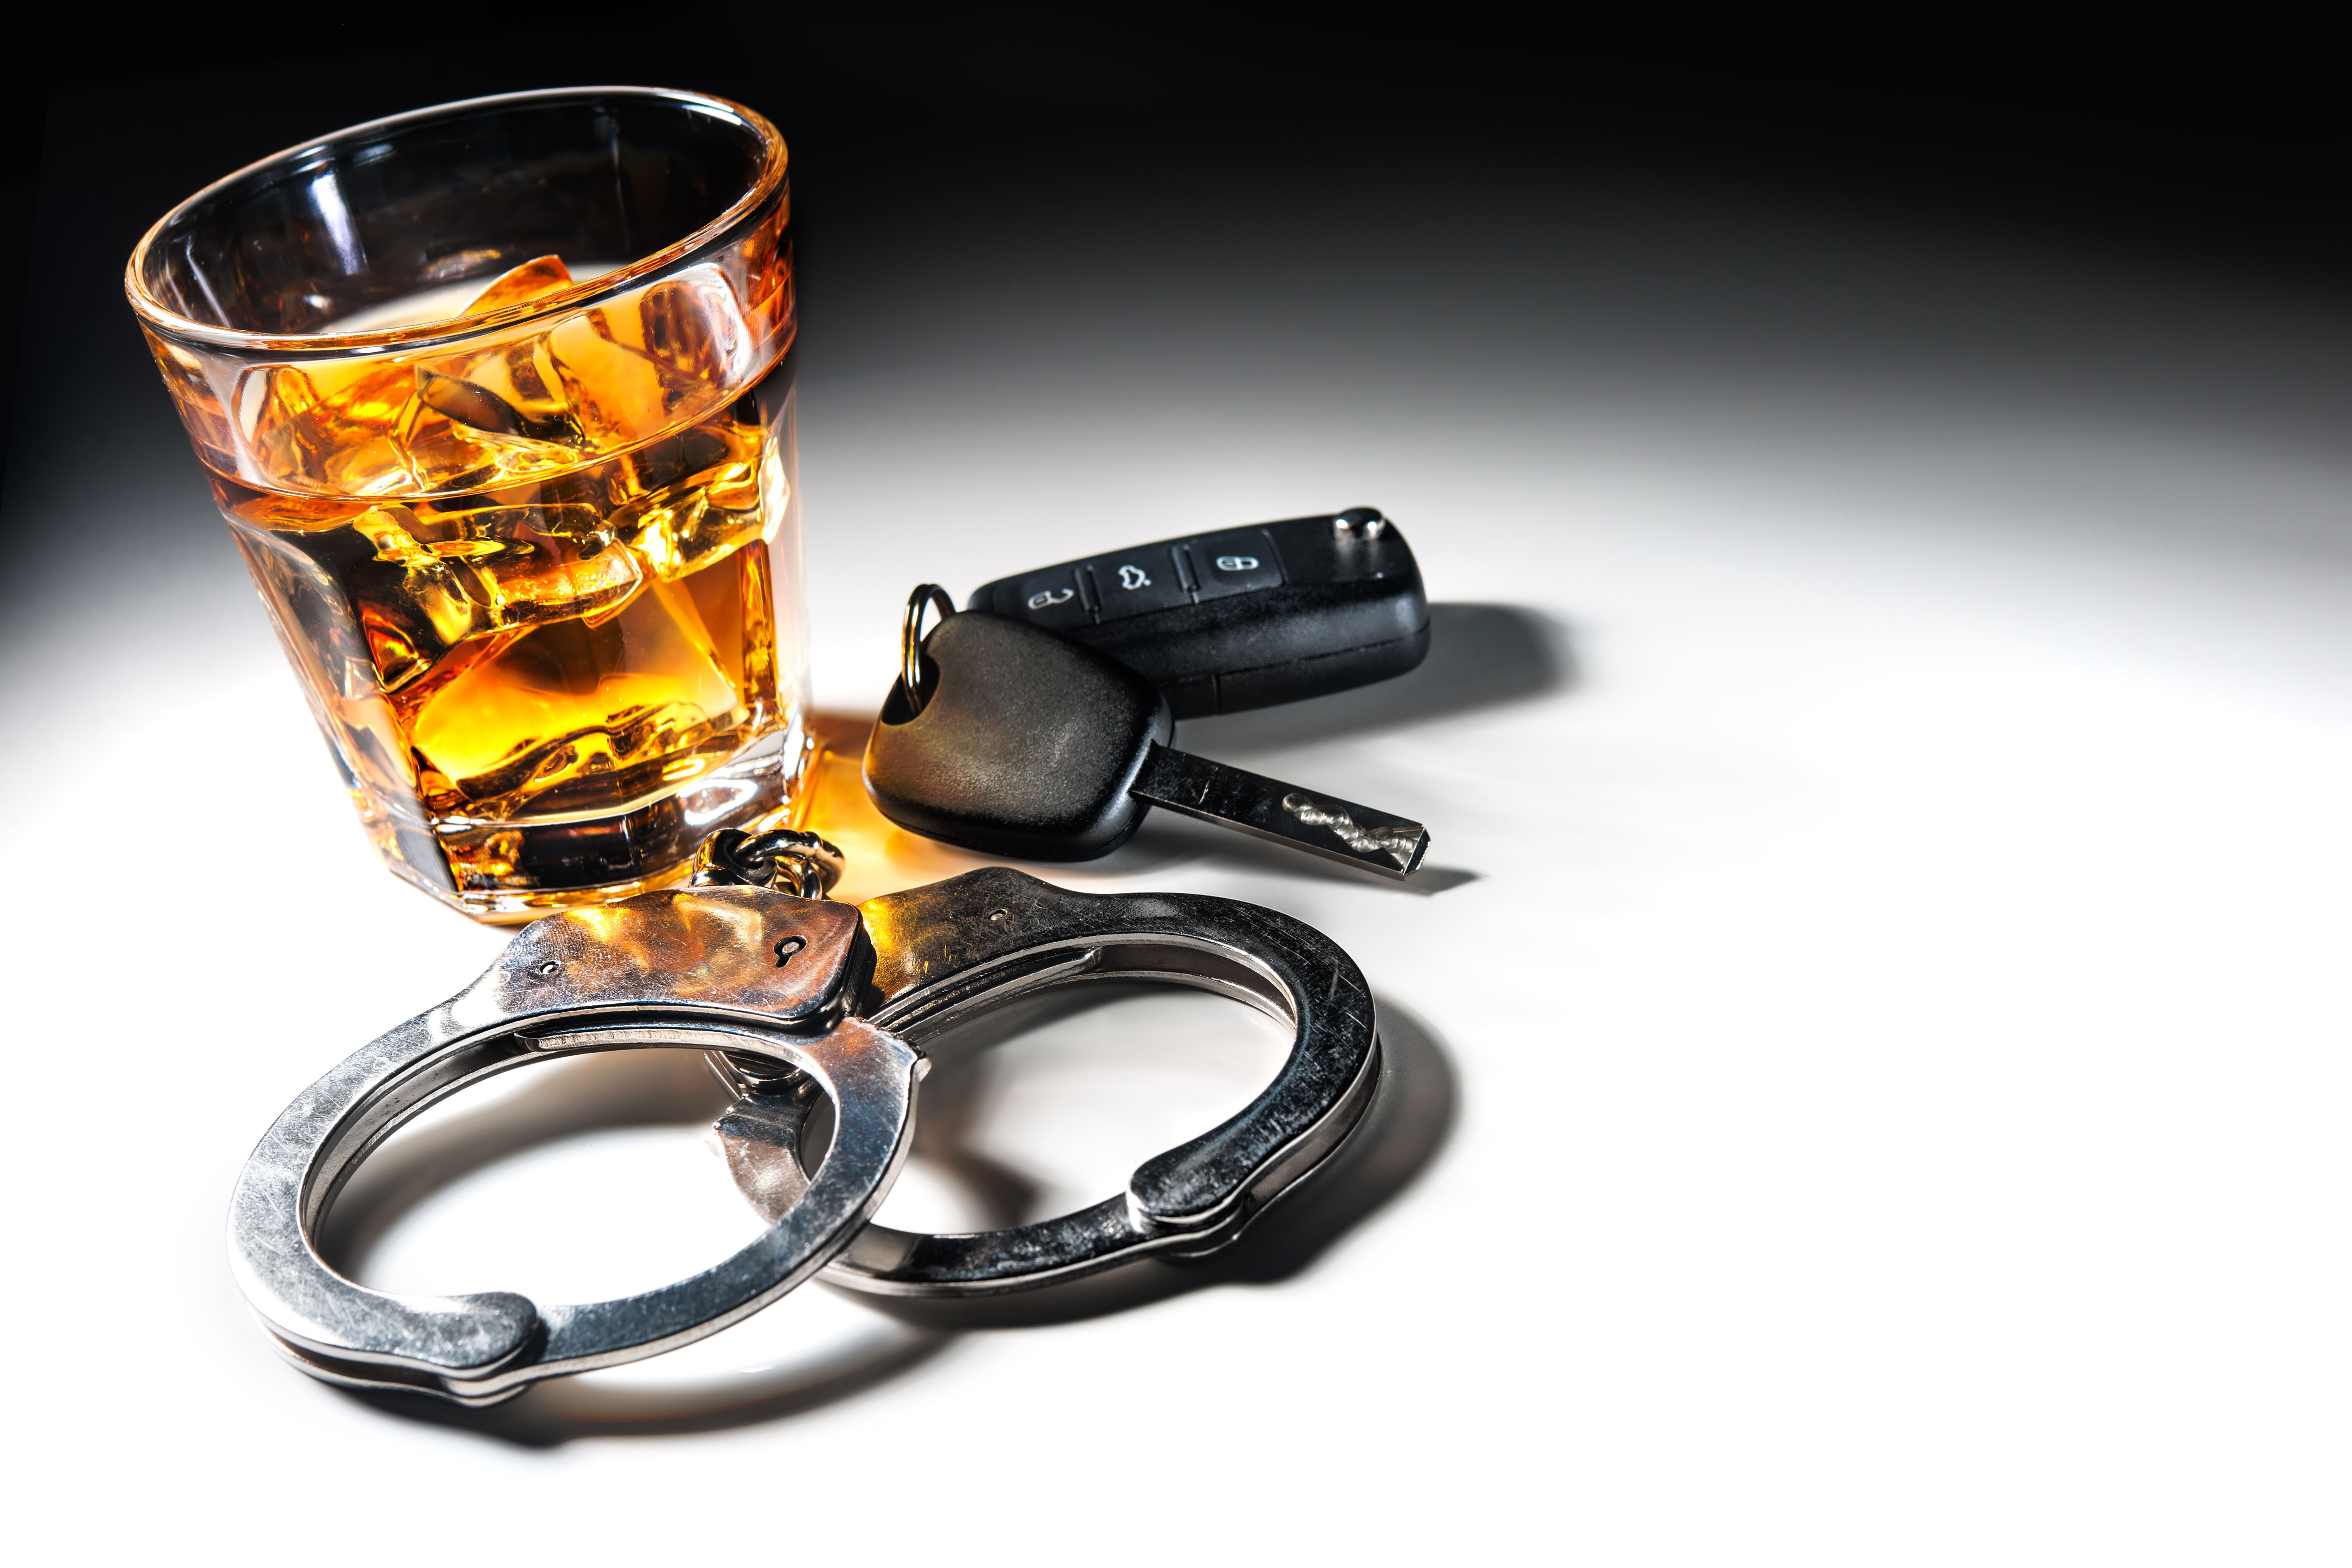 Alcohol, handcuffs and car keys - DUI in Alaska